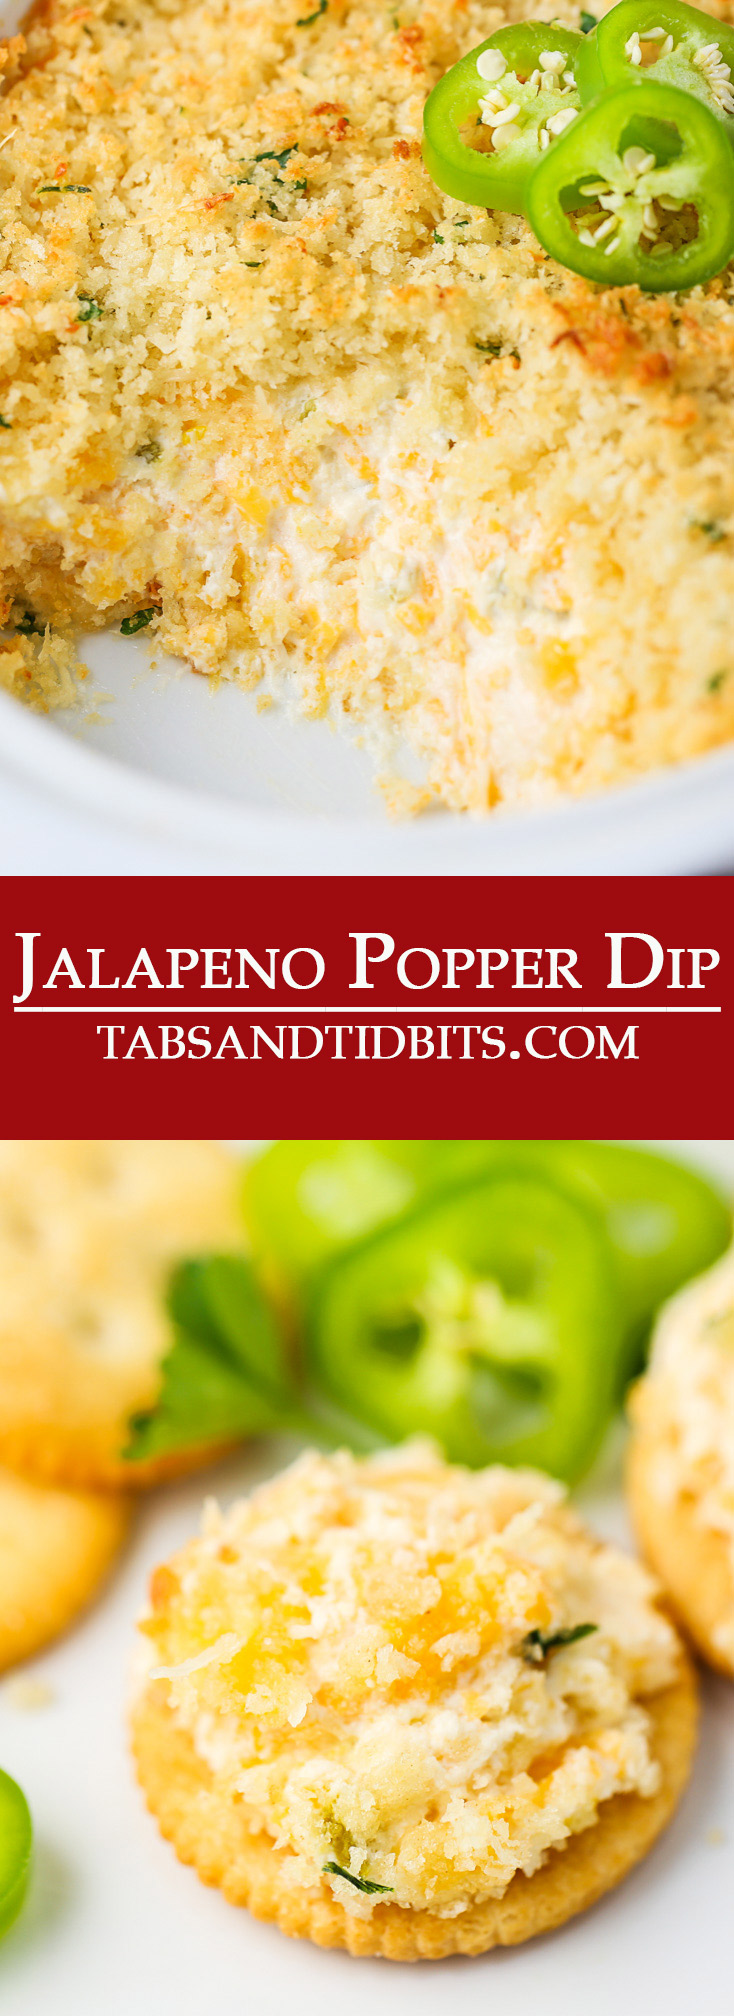 This Jalapeno Popper Dip is filled with cream cheese, sharp cheddar cheese, and diced jalapeno peppers. A creamy and cheesy dip with the perfect amount of spice and topped with a buttery and crispy topping!